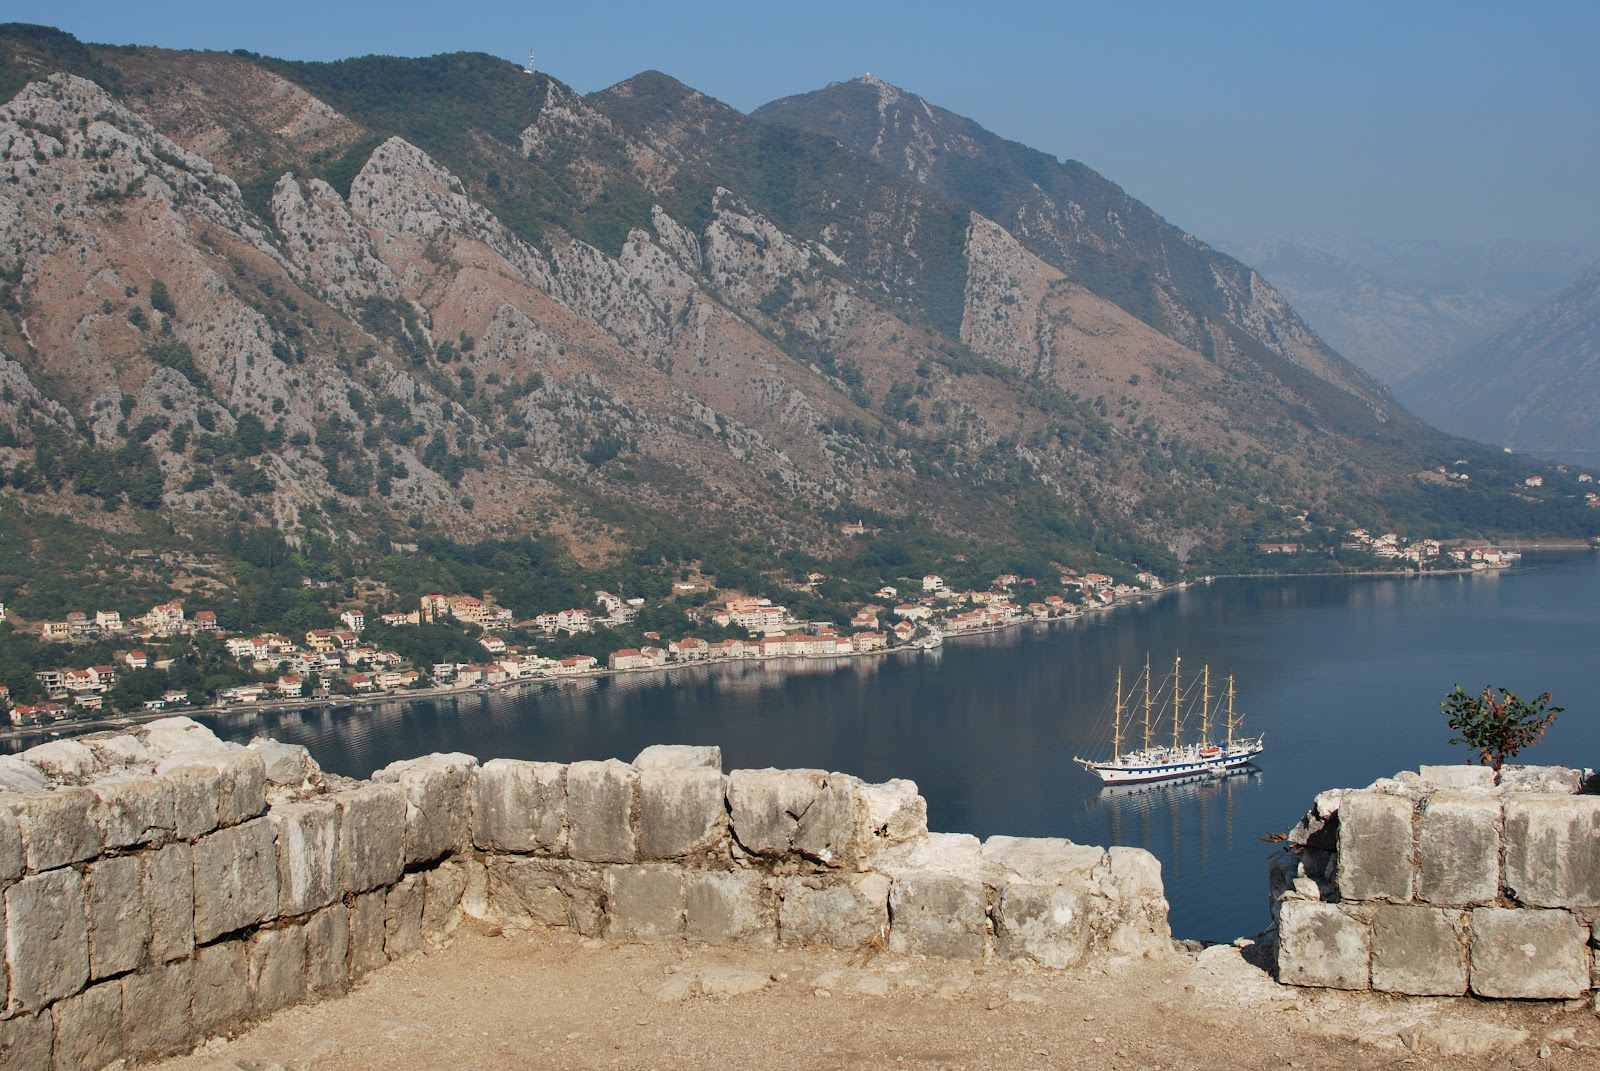 Looking out onto the Bay of Kotor while climbing the Fortifications